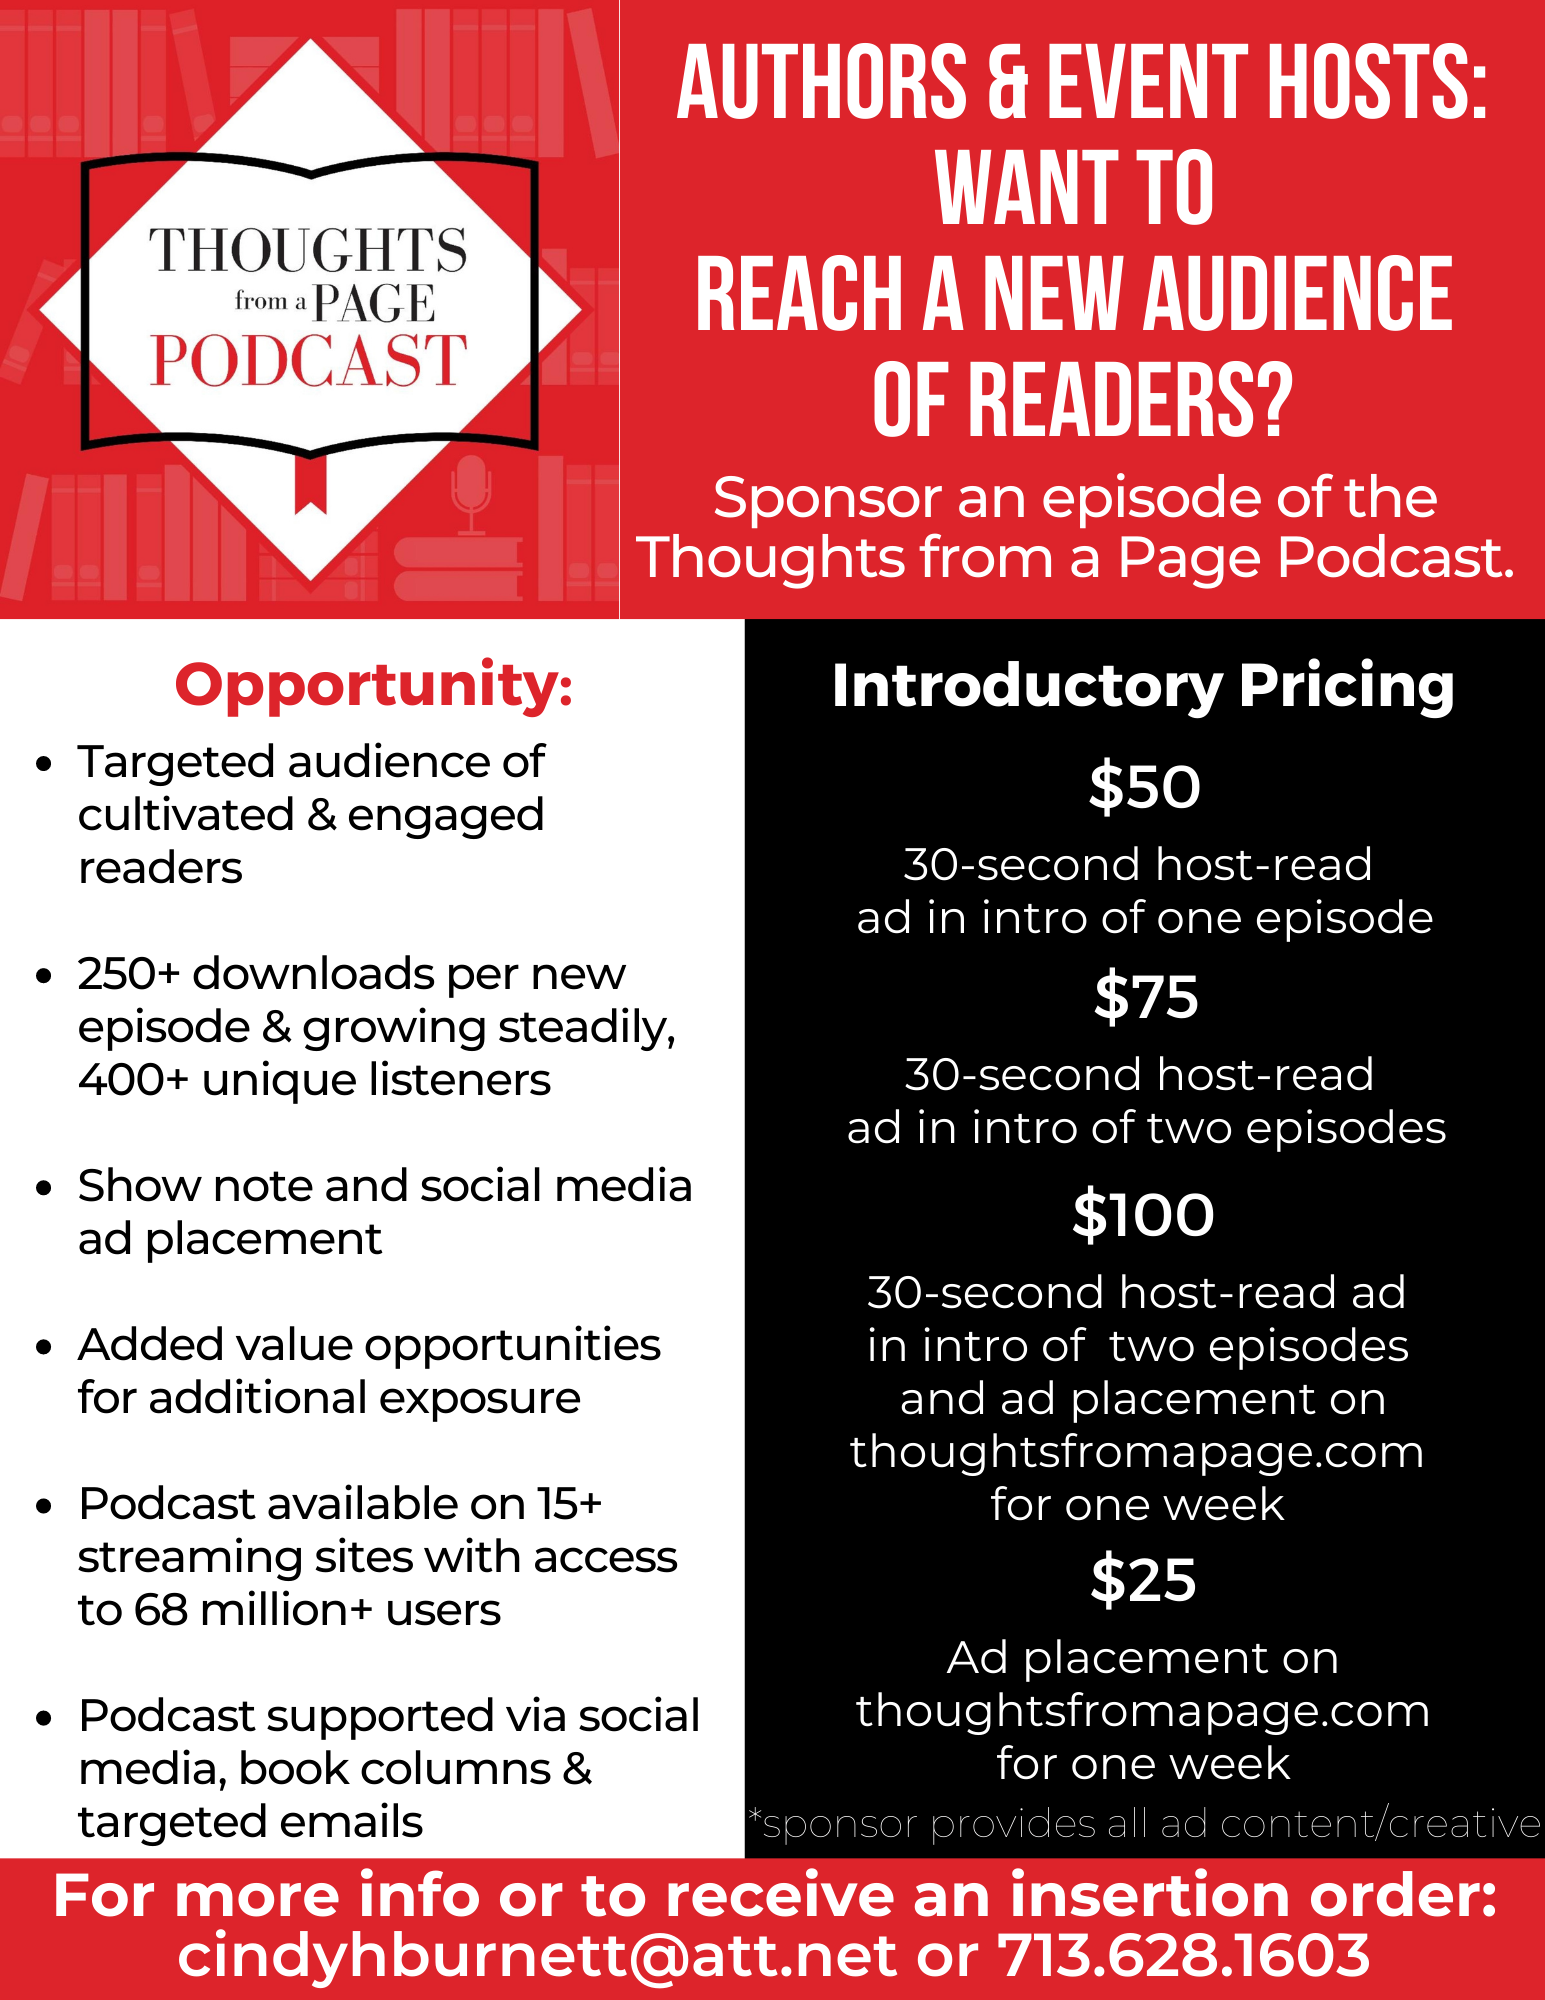 Thoughts from a Page Episode Sponsorship Opportunity